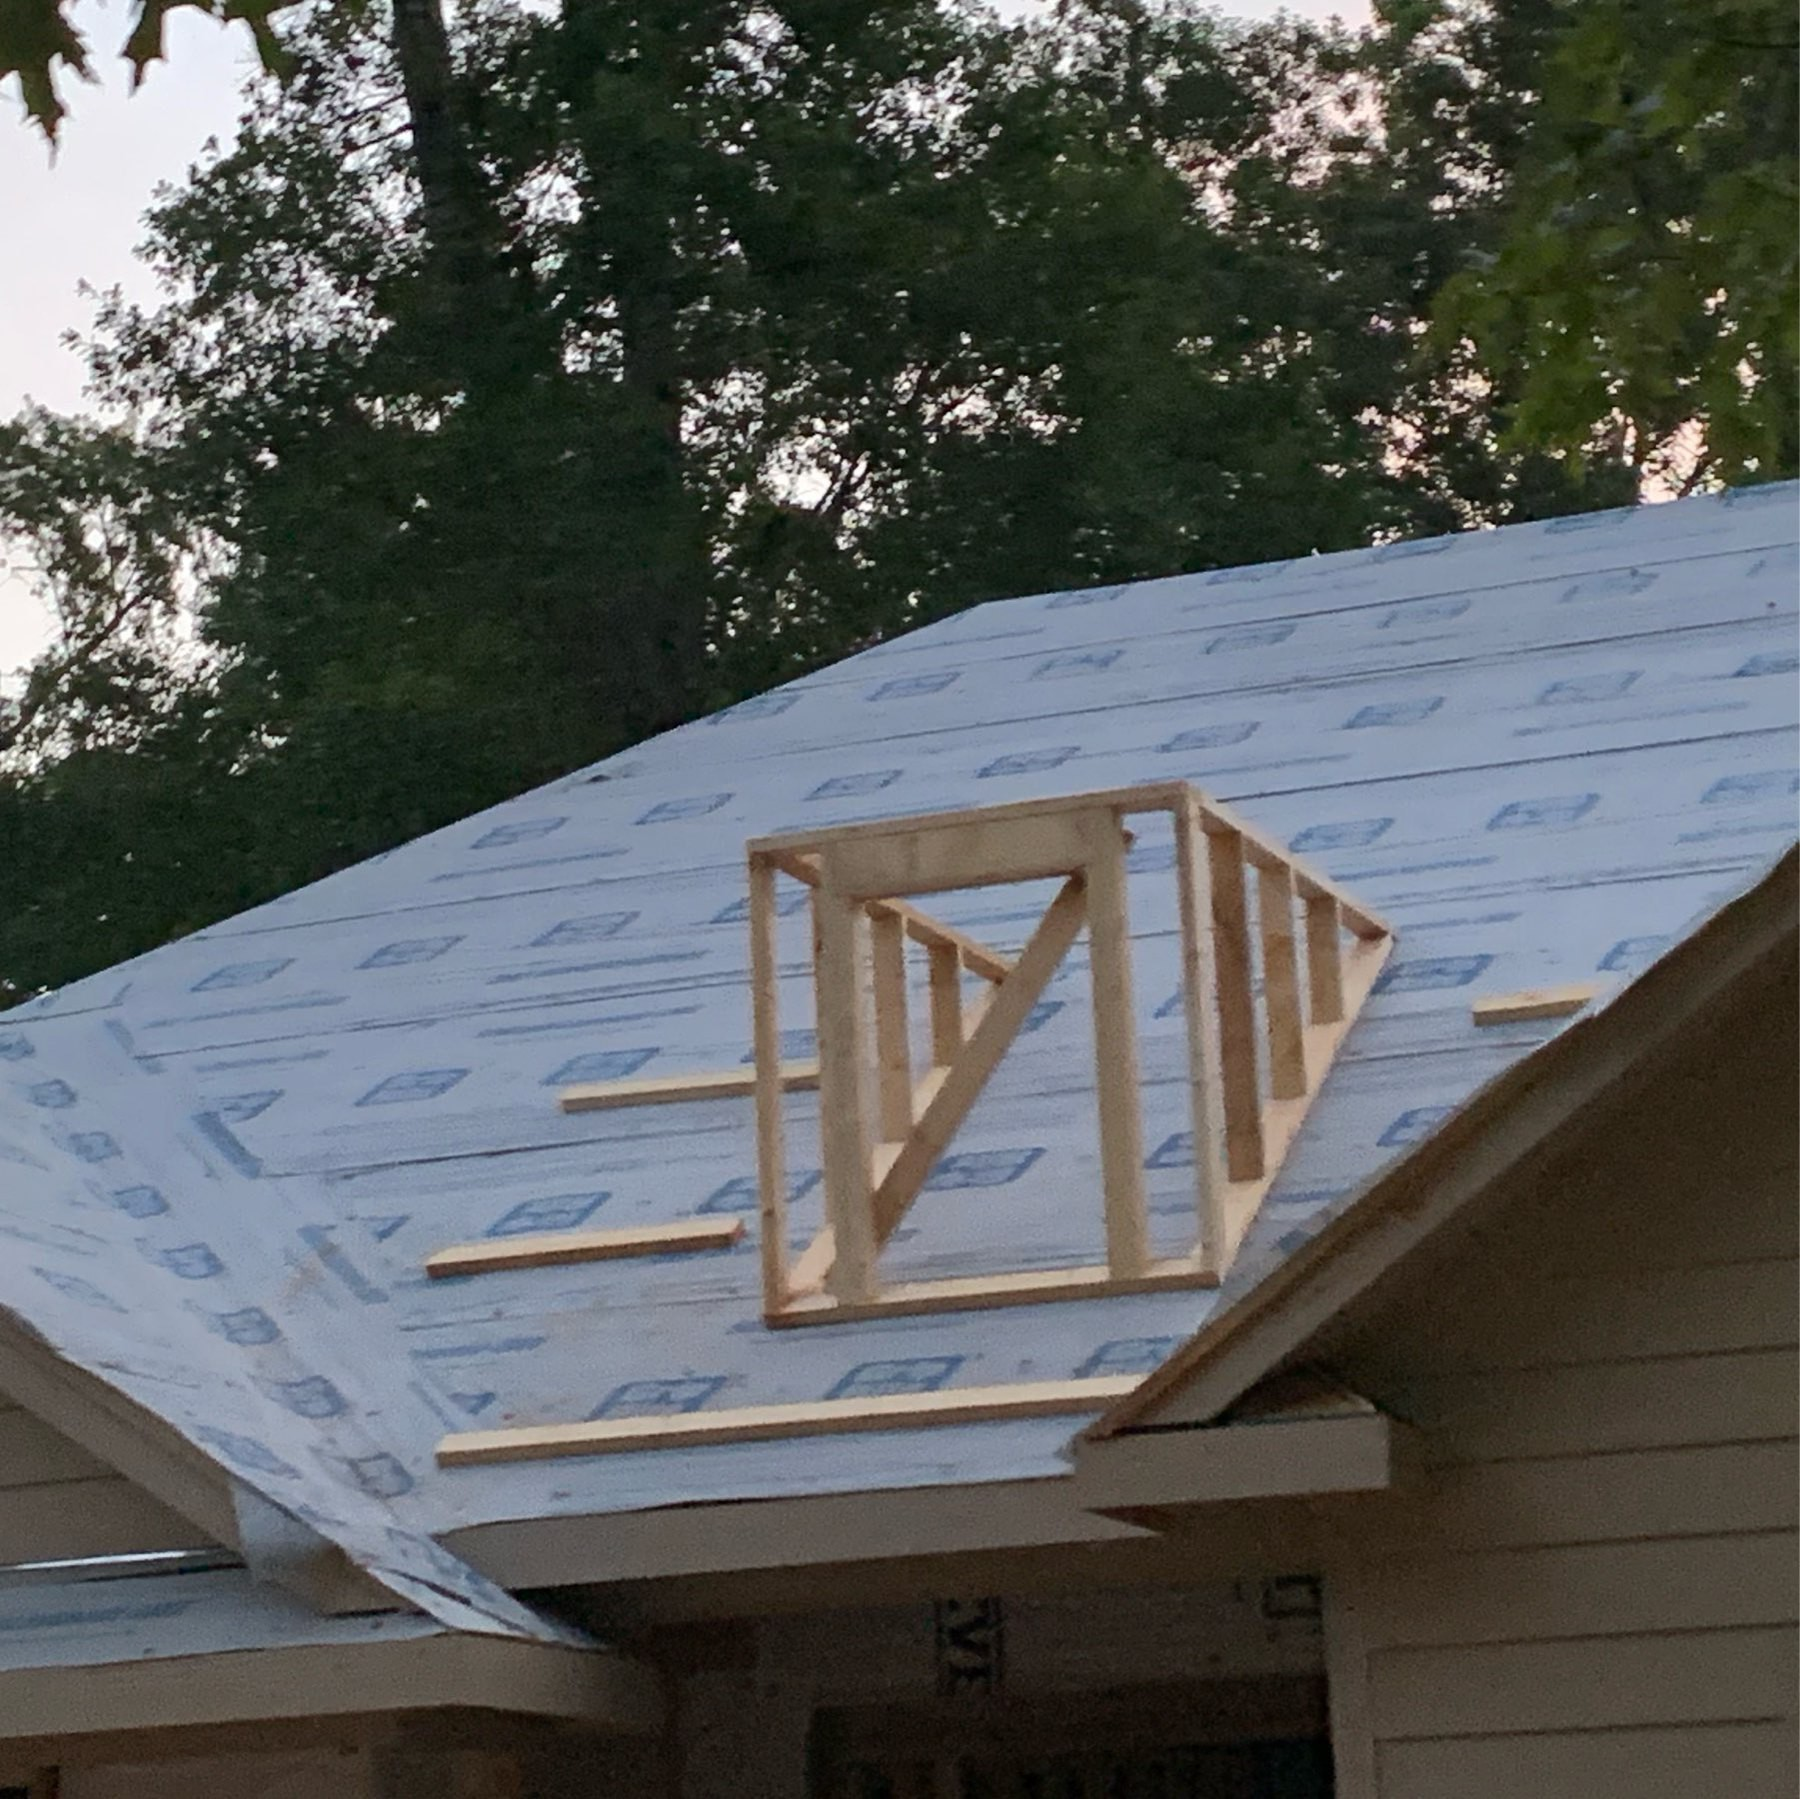 Fake window framed on roof of new home construction